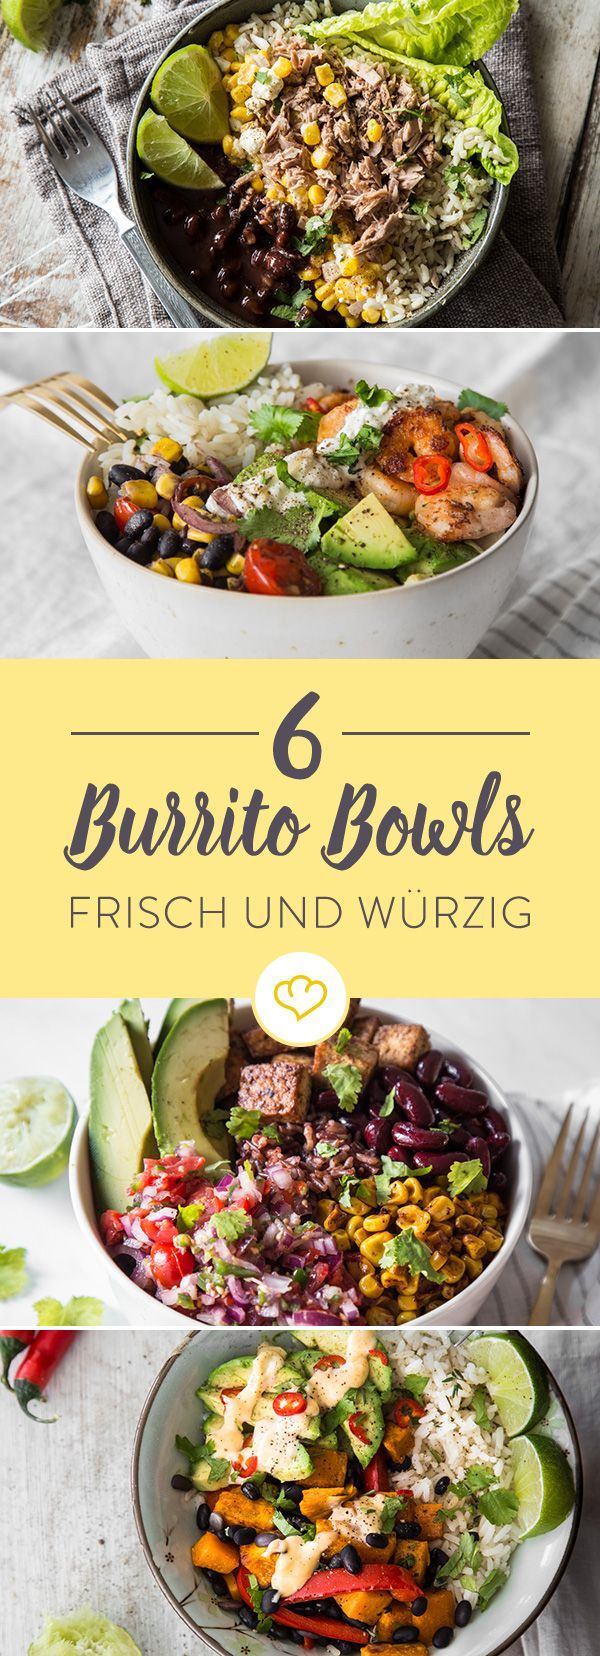 Photo of 6 colorful burrito bowls – get Mexico in your bowl